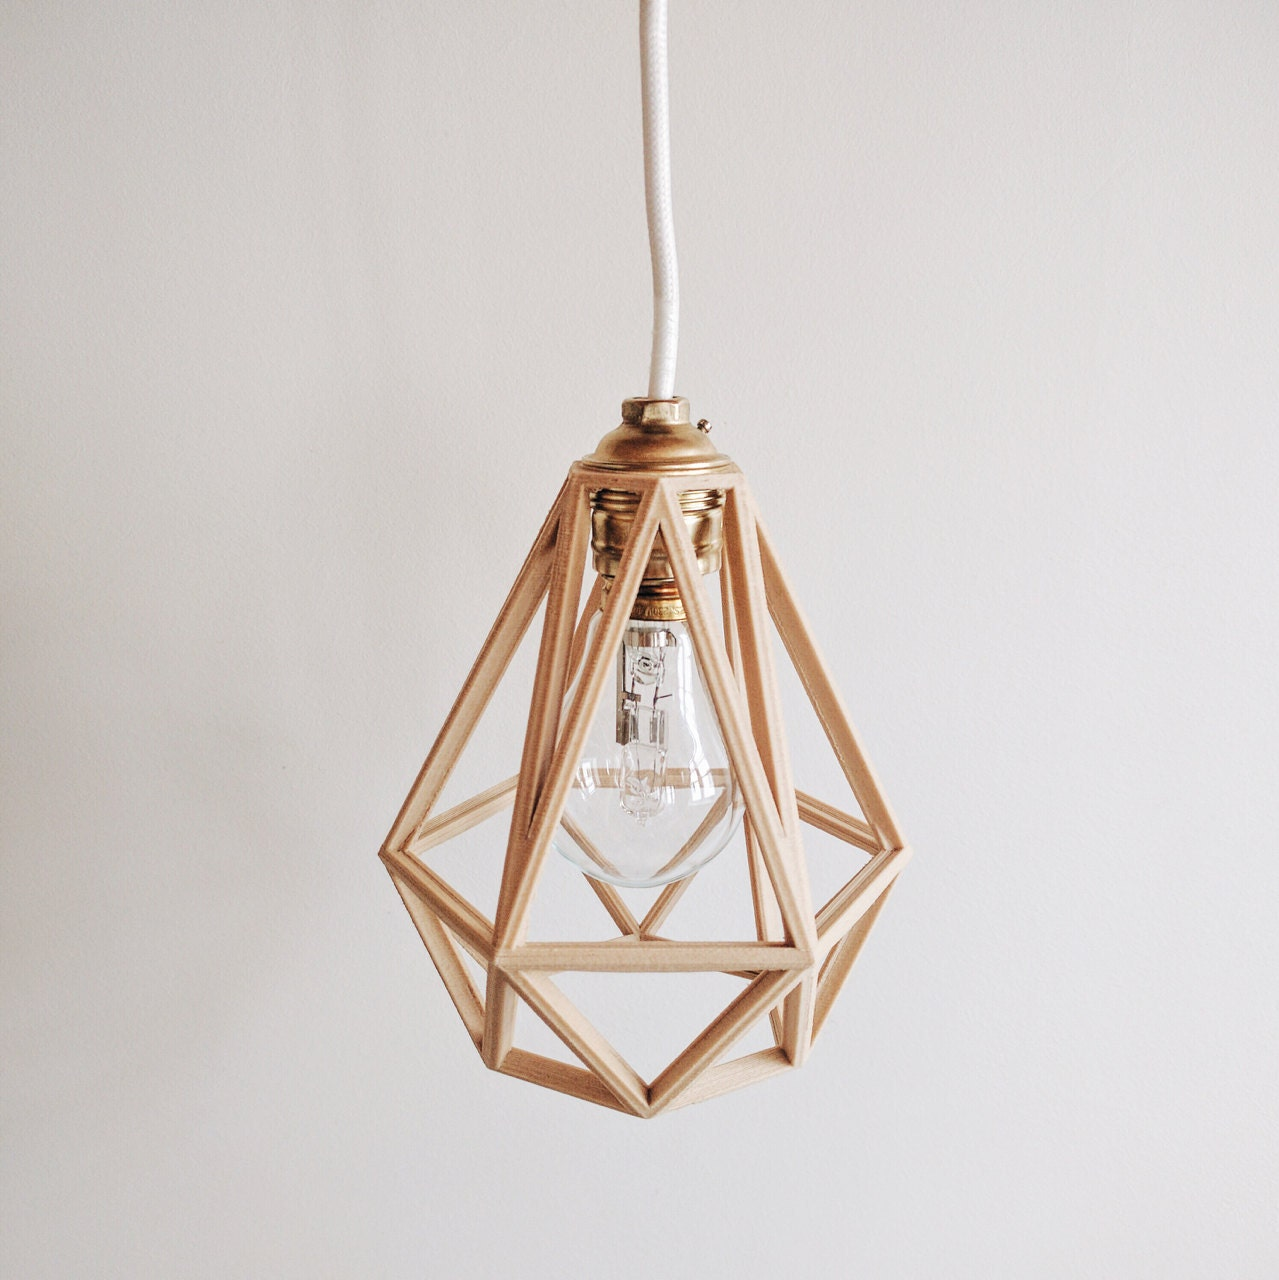 Lampe suspension abat jour pendentif diamant en bois for Suspension bois